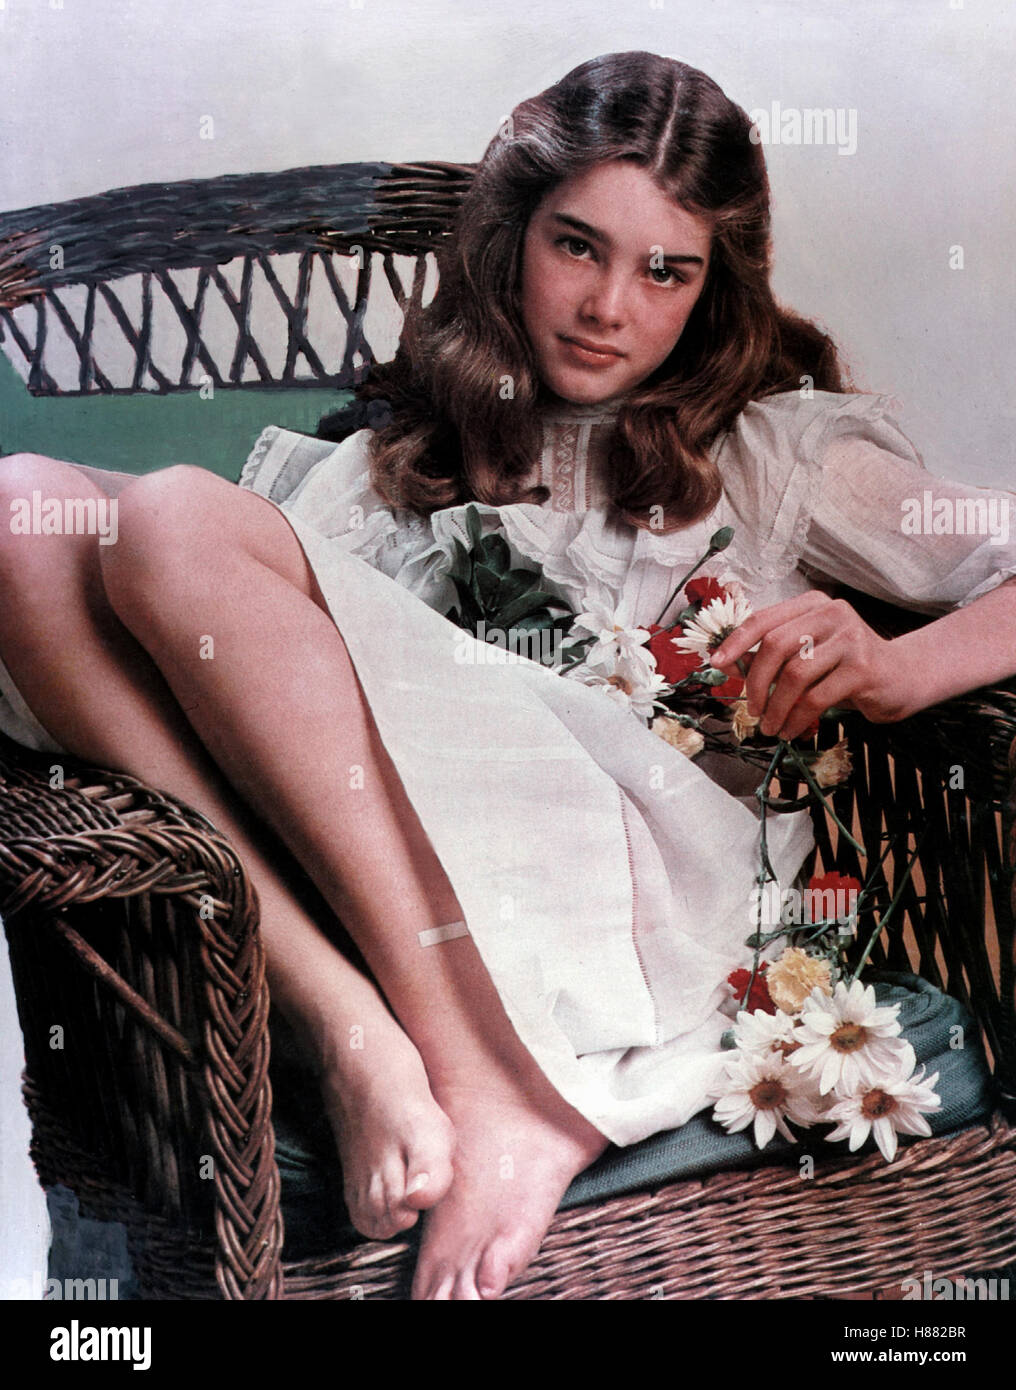 Brooke Shields Nude Pics Videos, Sex Tape